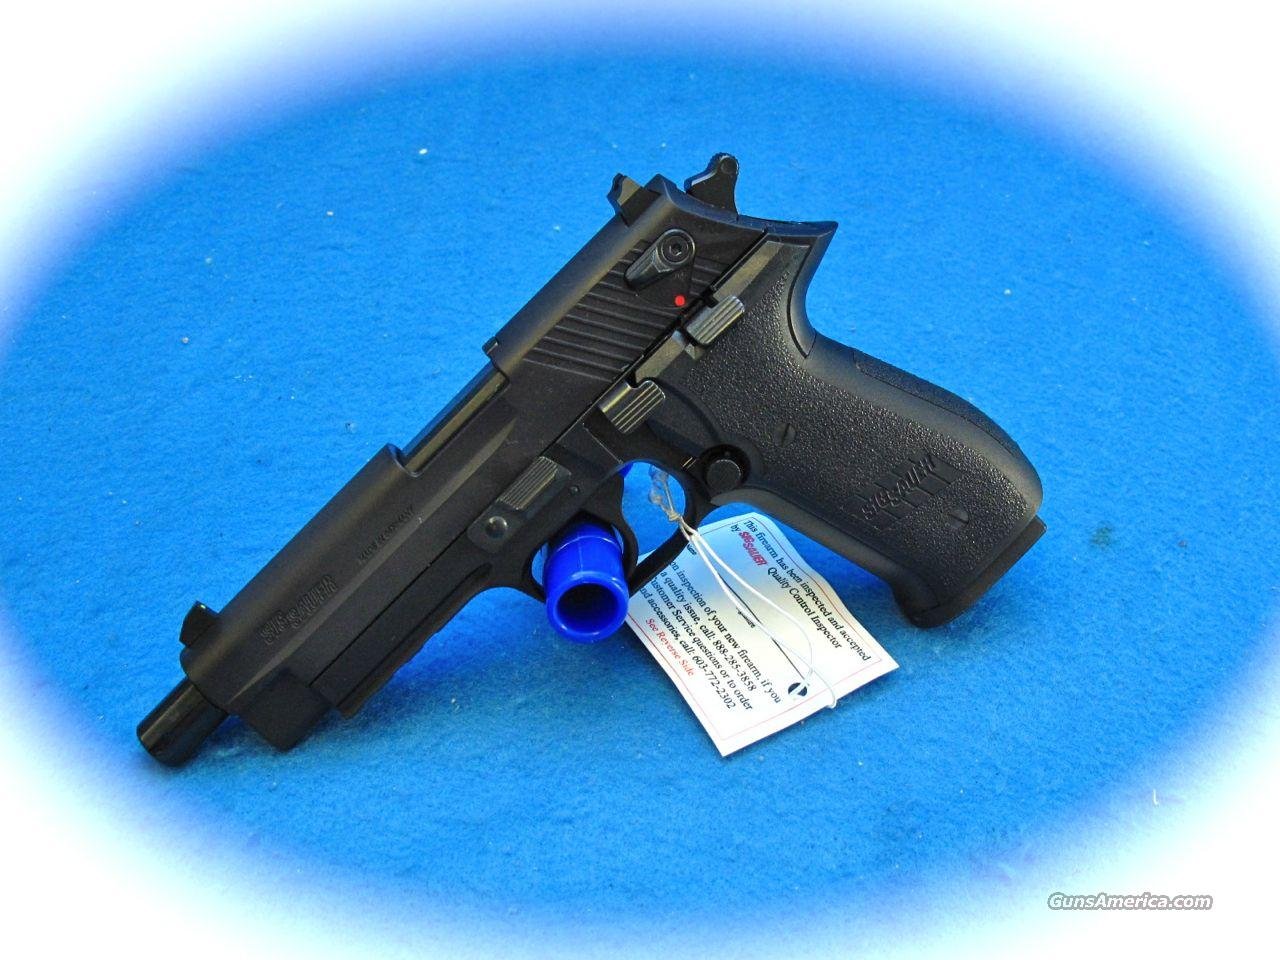 Sig Sauer Mosquito  22 LR pistol with Threaded Barrel **NEW**  Guns > Pistols > Sig - Sauer/Sigarms Pistols > Mosquito